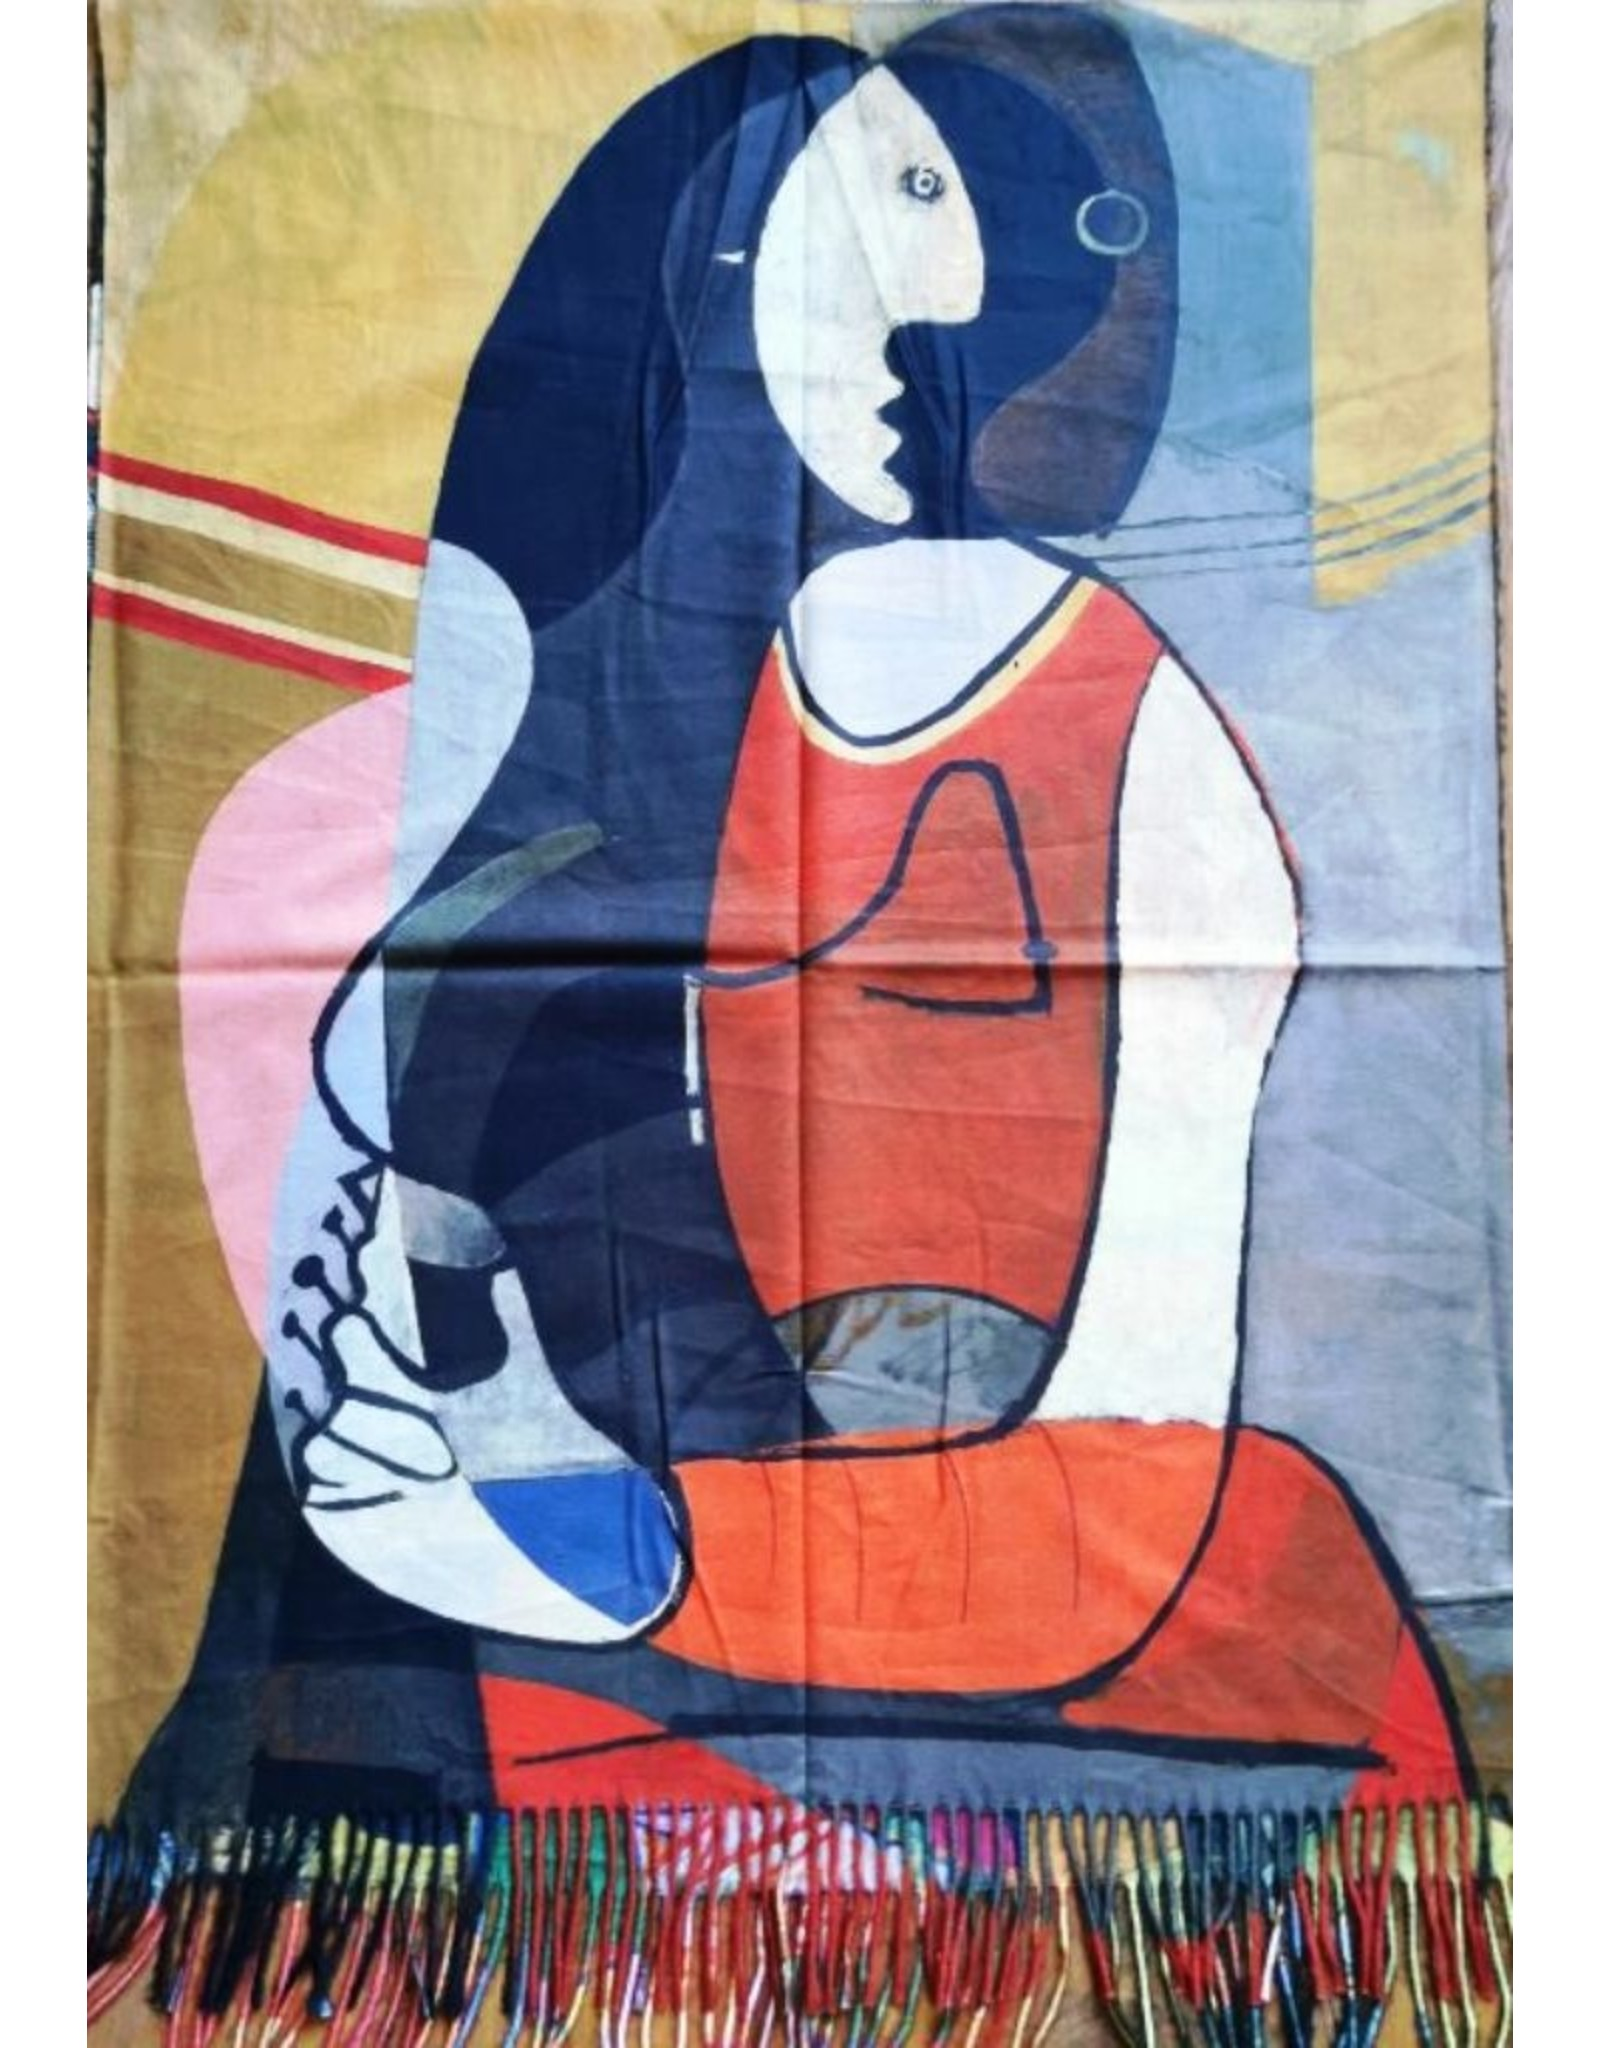 MC Miscellaneous - Omslagdoek Picasso Seated Woman met dubbelzijdige opdruk